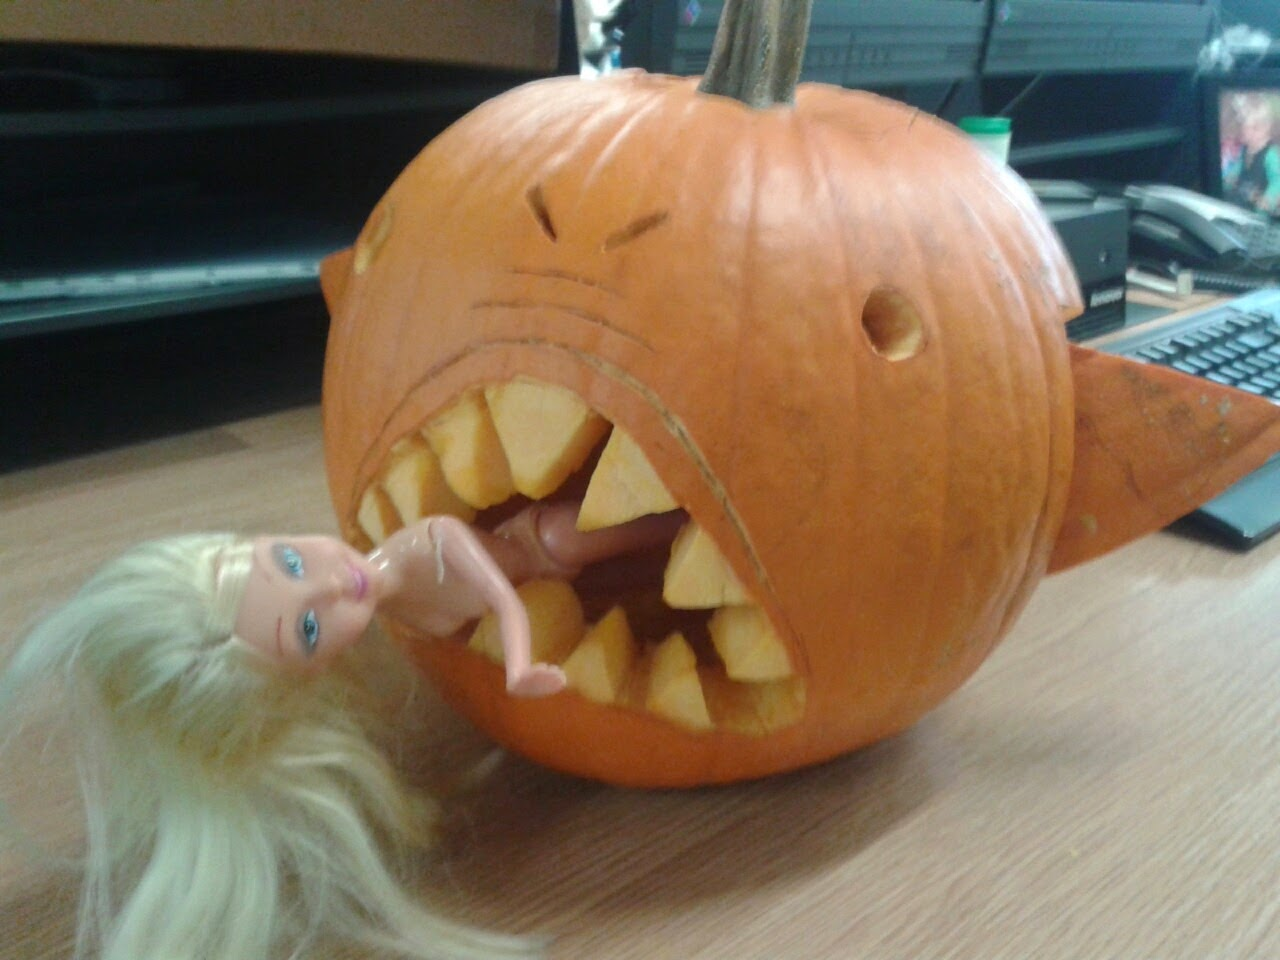 Pumpkin Carving Ideas for Halloween 2017: More Awesome Pumpkin ...